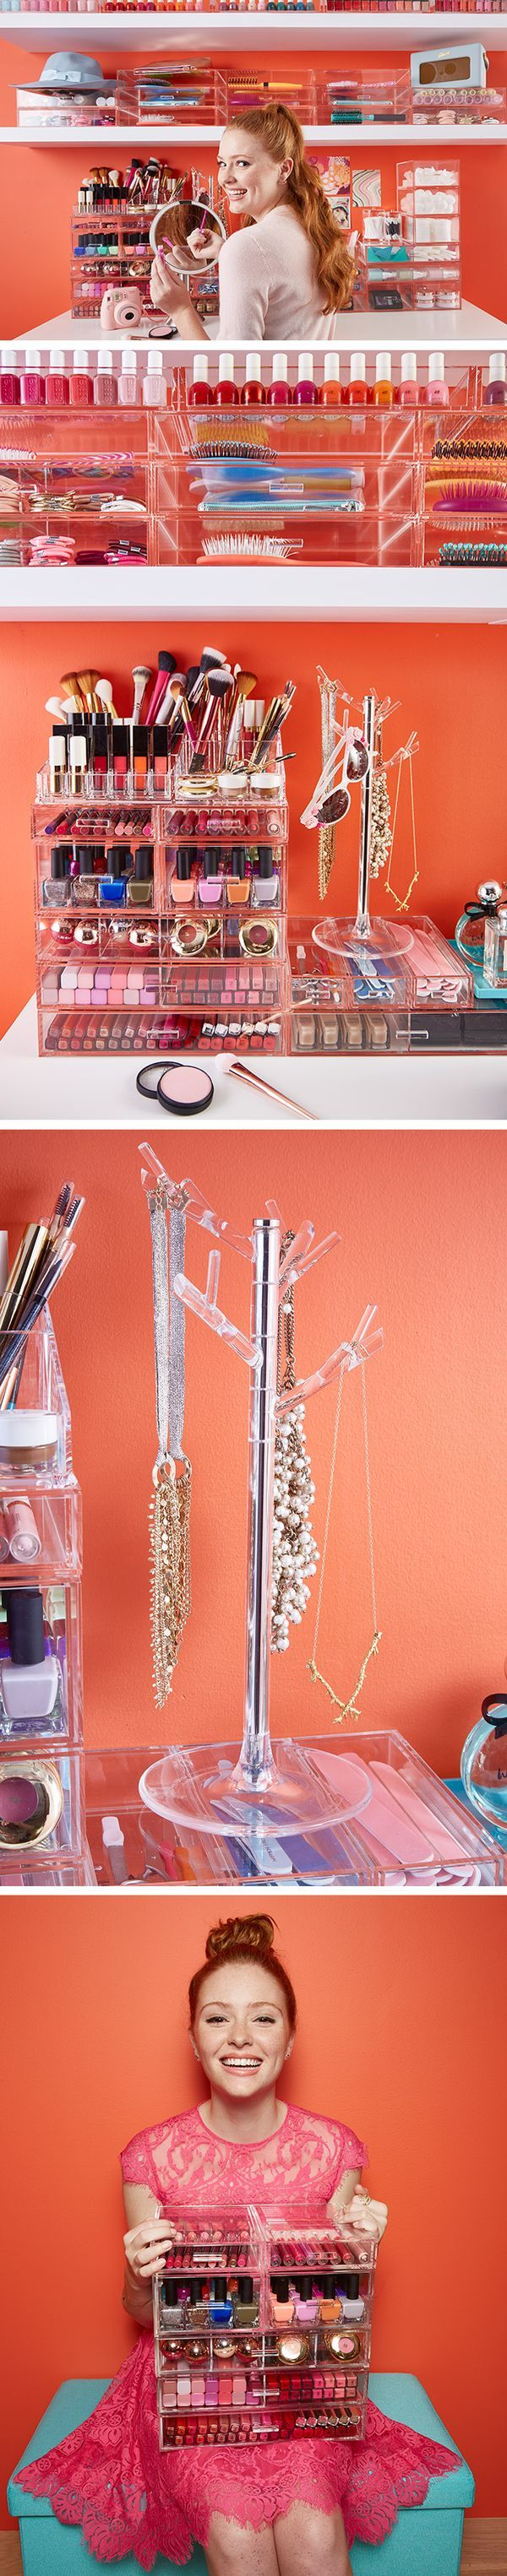 Be a one-girl glam squad with acrylic organizers from The Container Store!